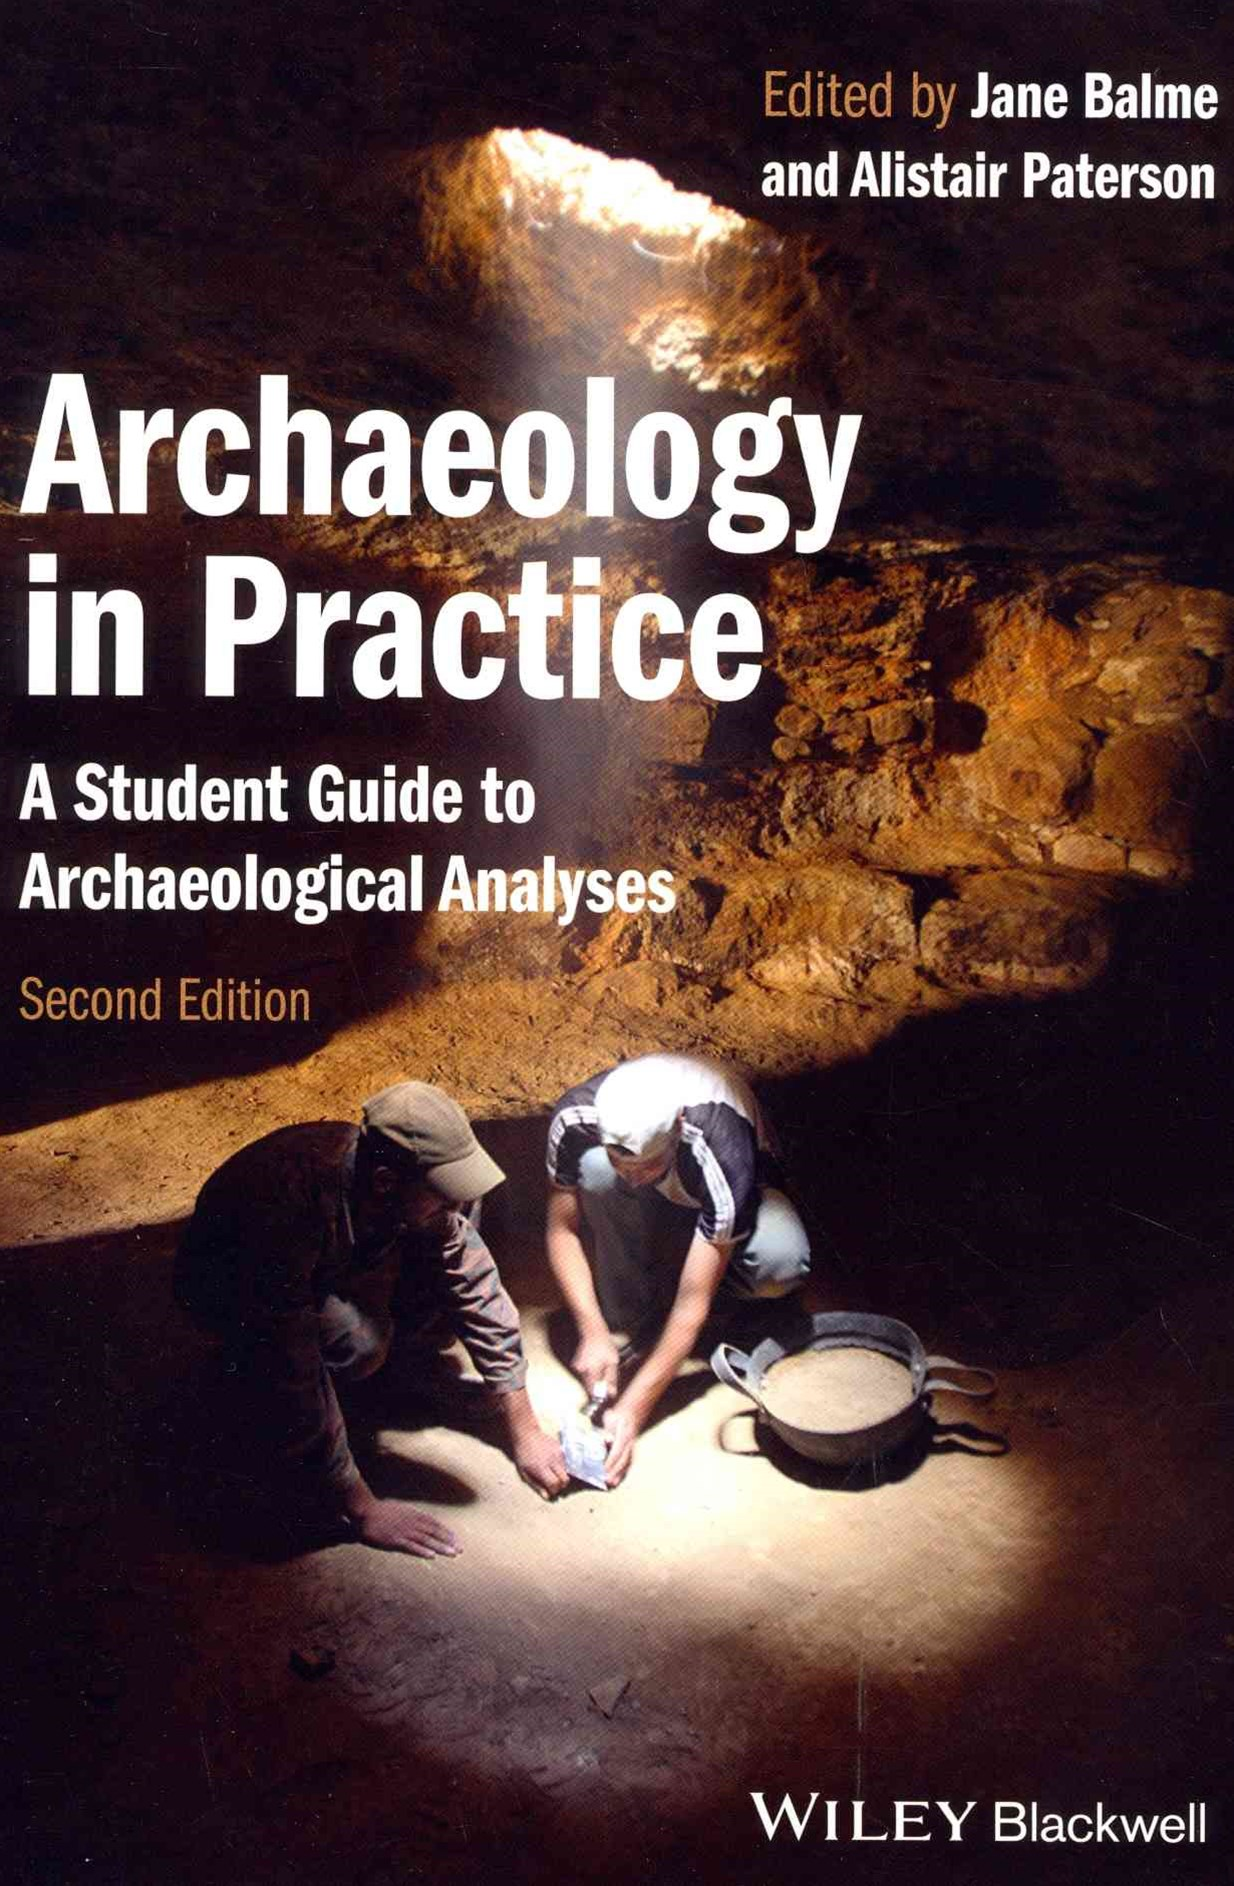 A Student Guide to Archaeological Analyses